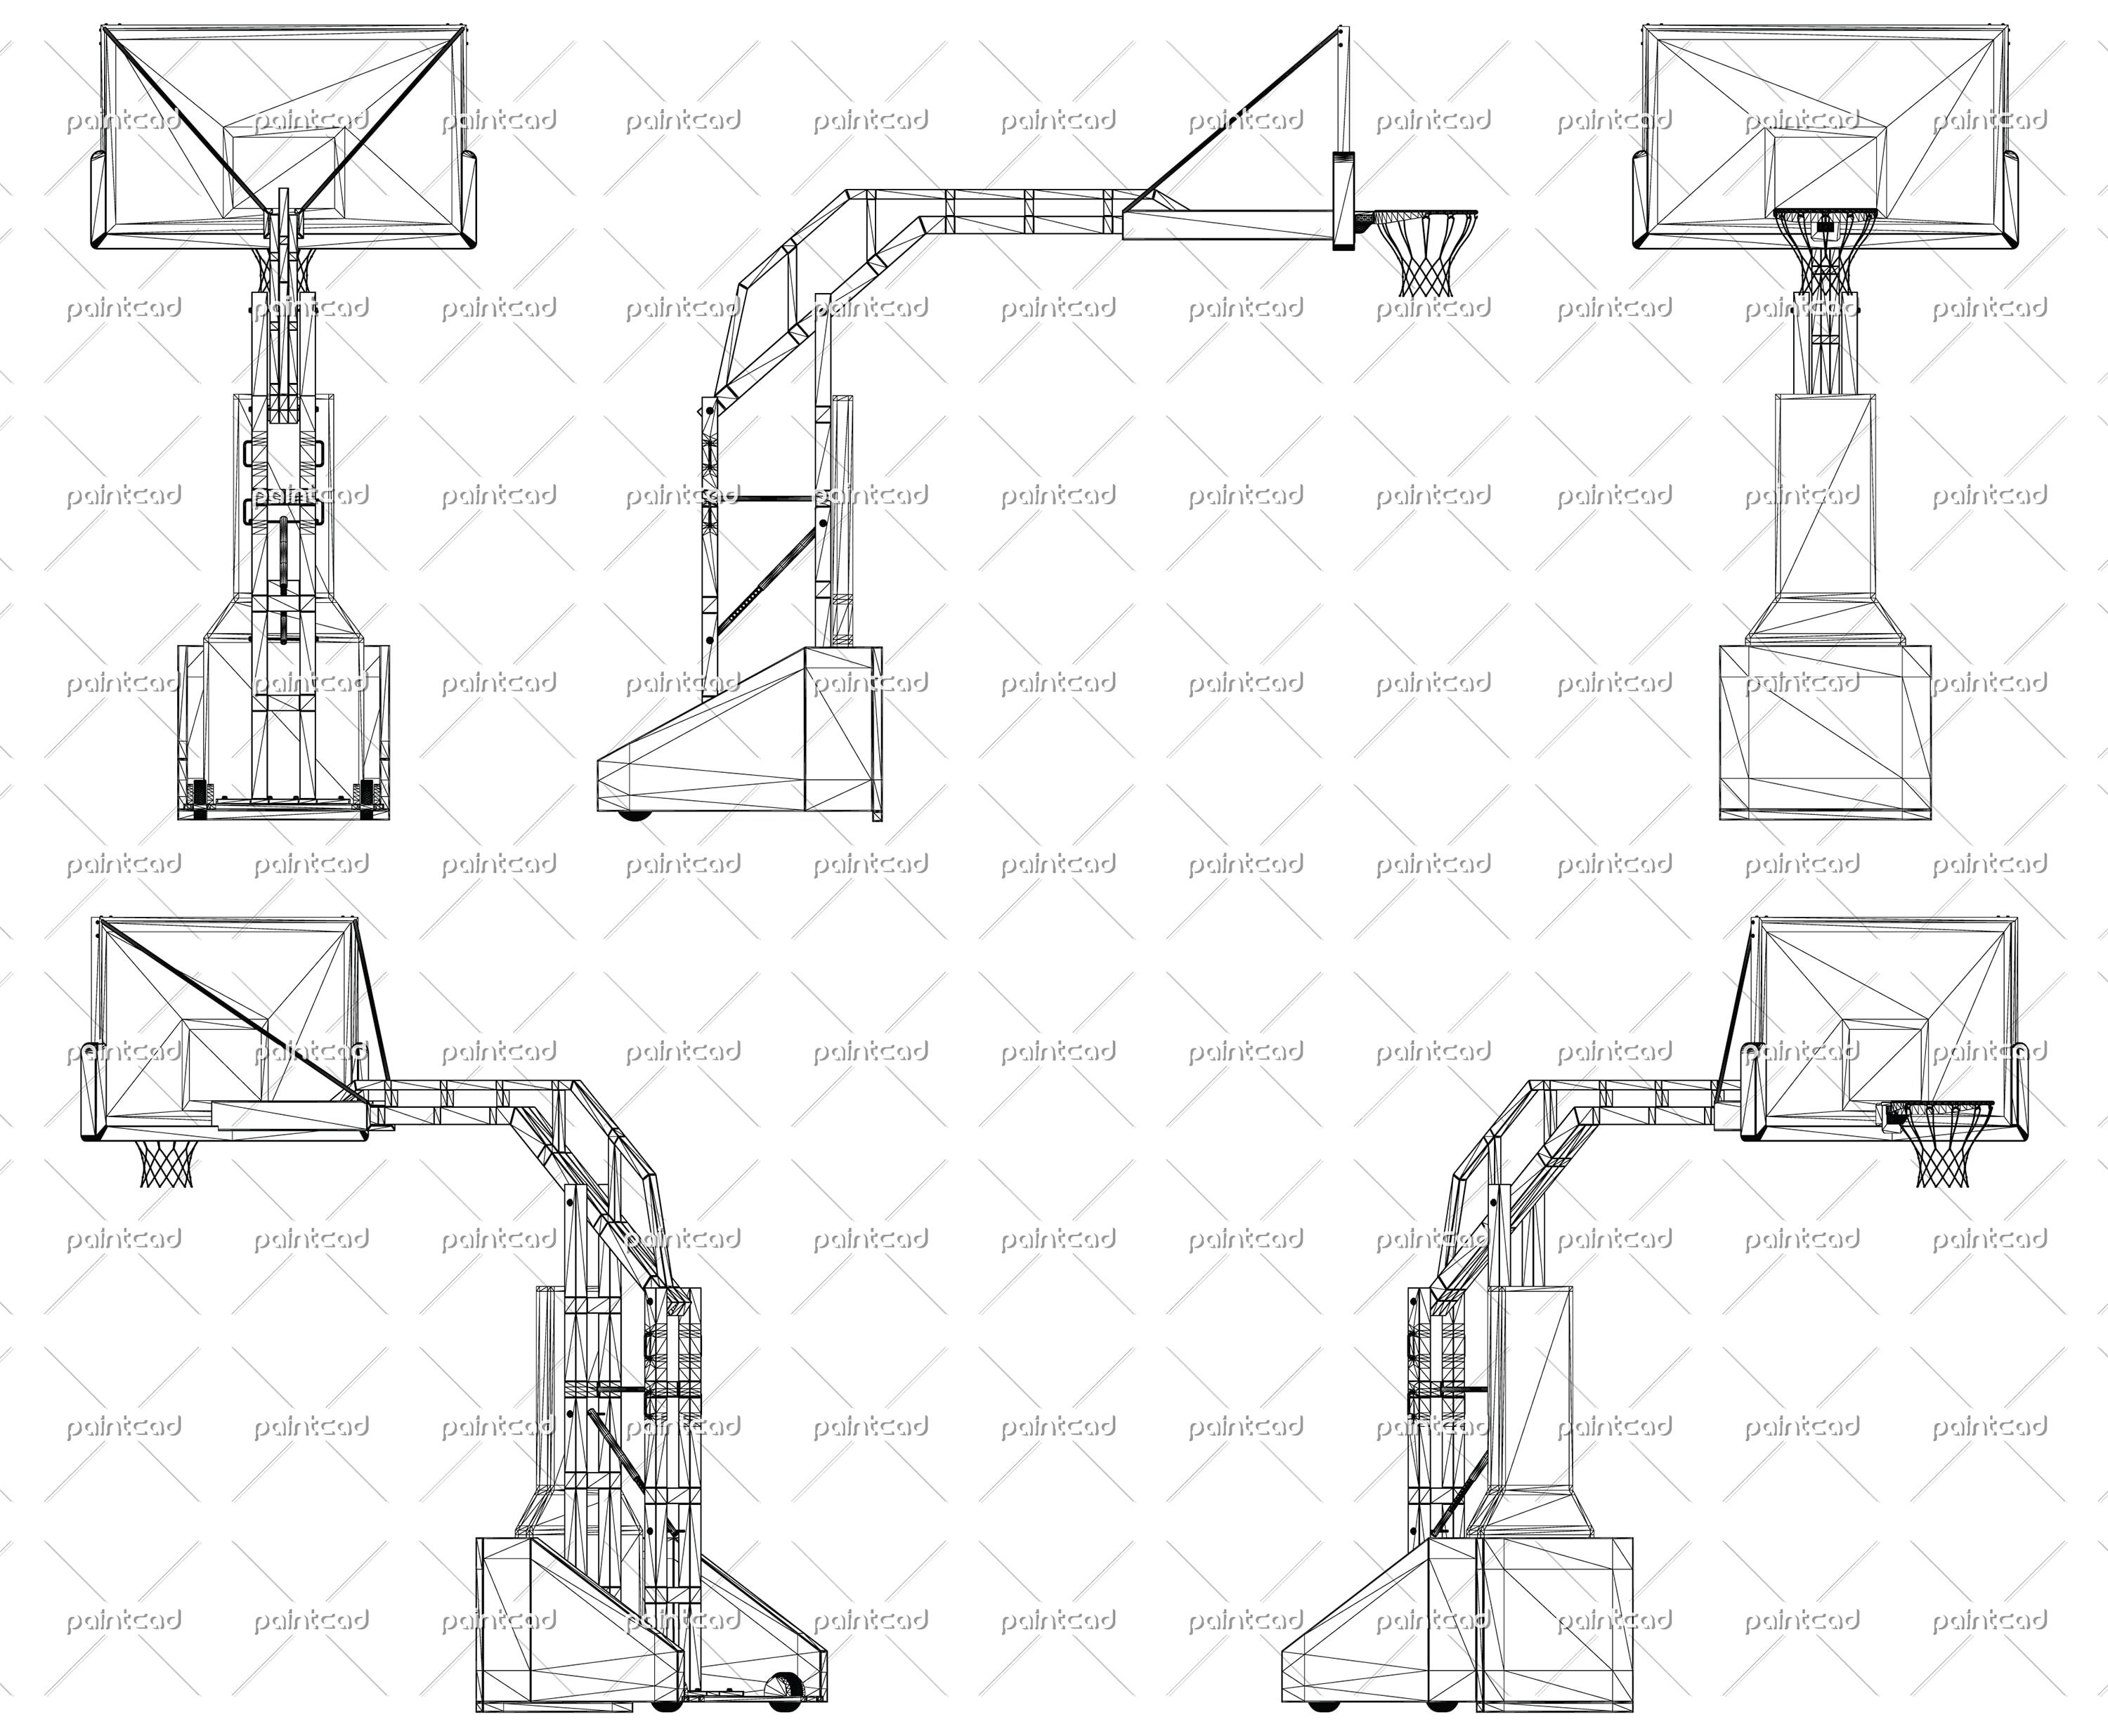 wireframe design of professional basketball stand wireframe